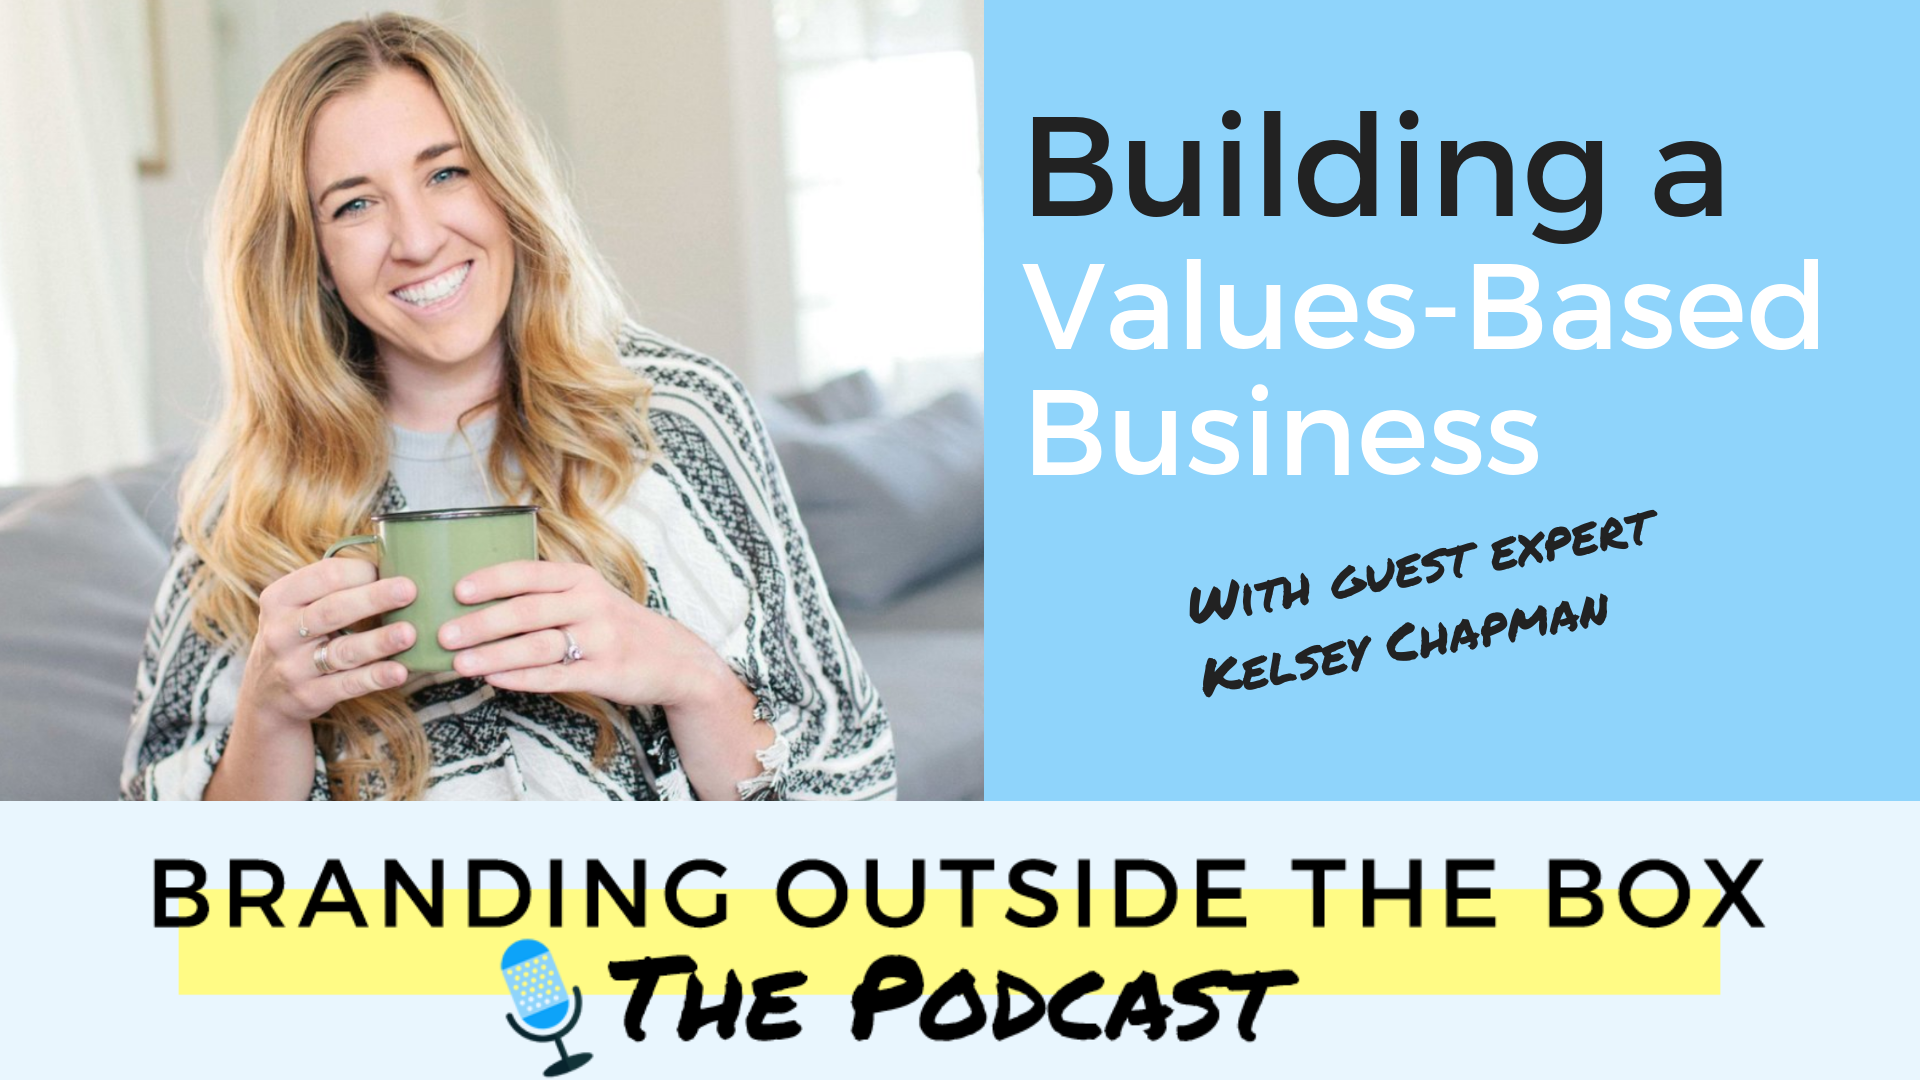 Building a Values-Based Business